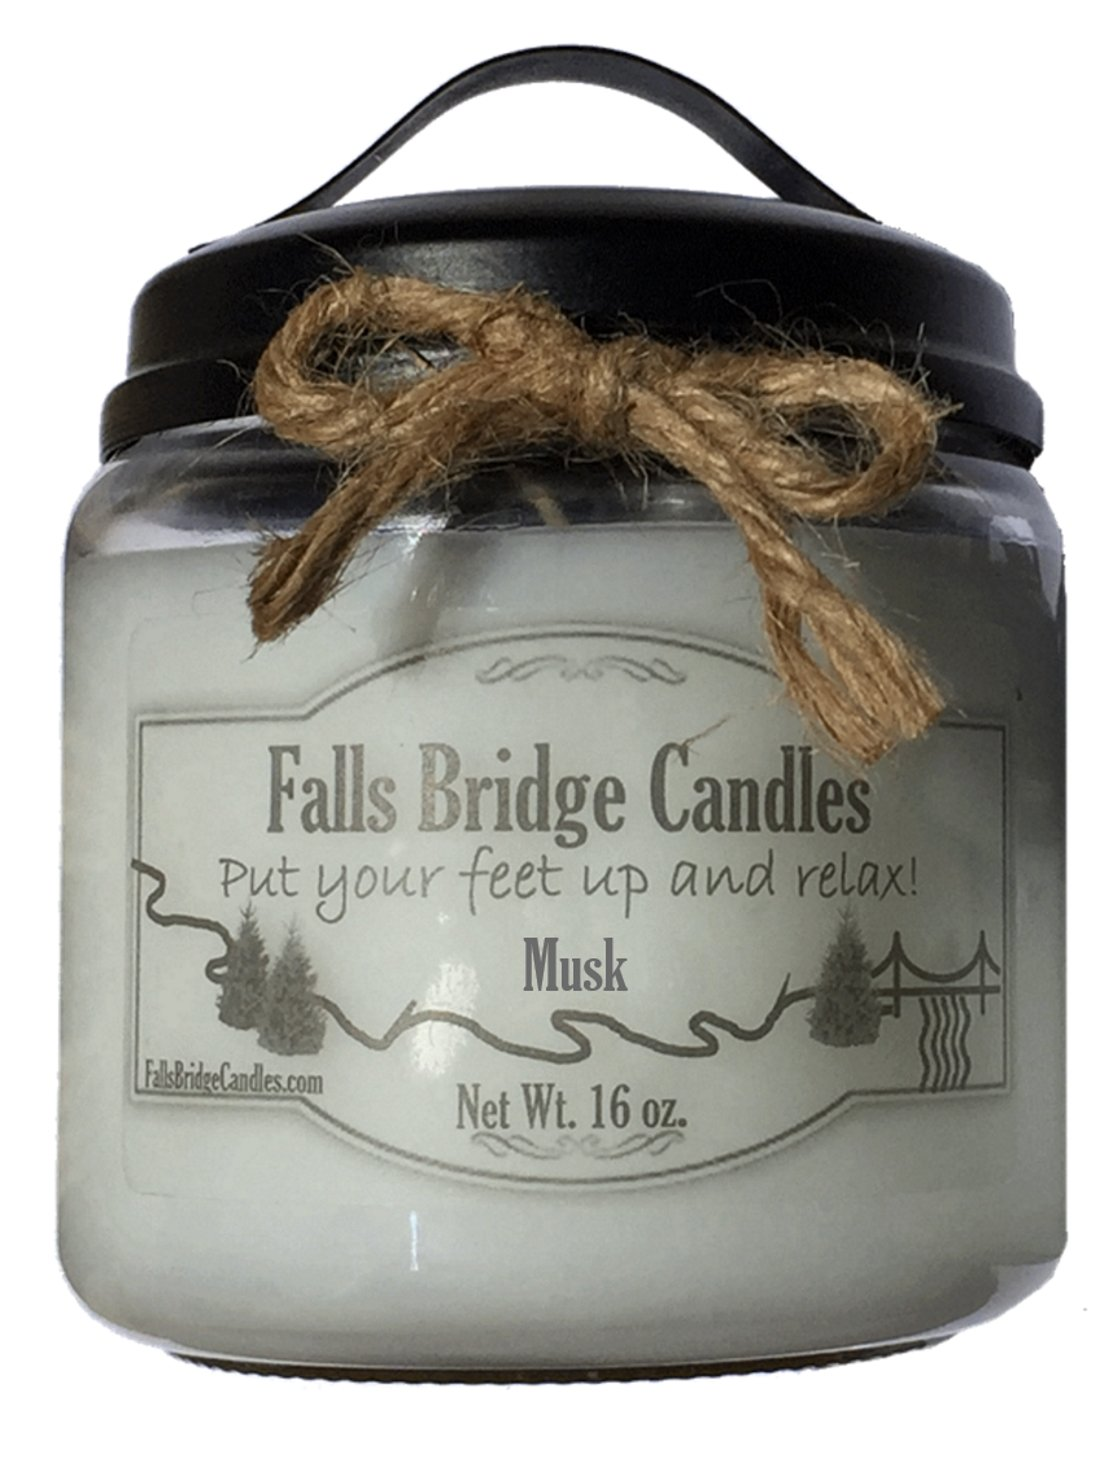 Falls Bridge Candles MUSK16 Musk Paraffin Wax Scented Jar Candle w//Handle Lid 16 oz